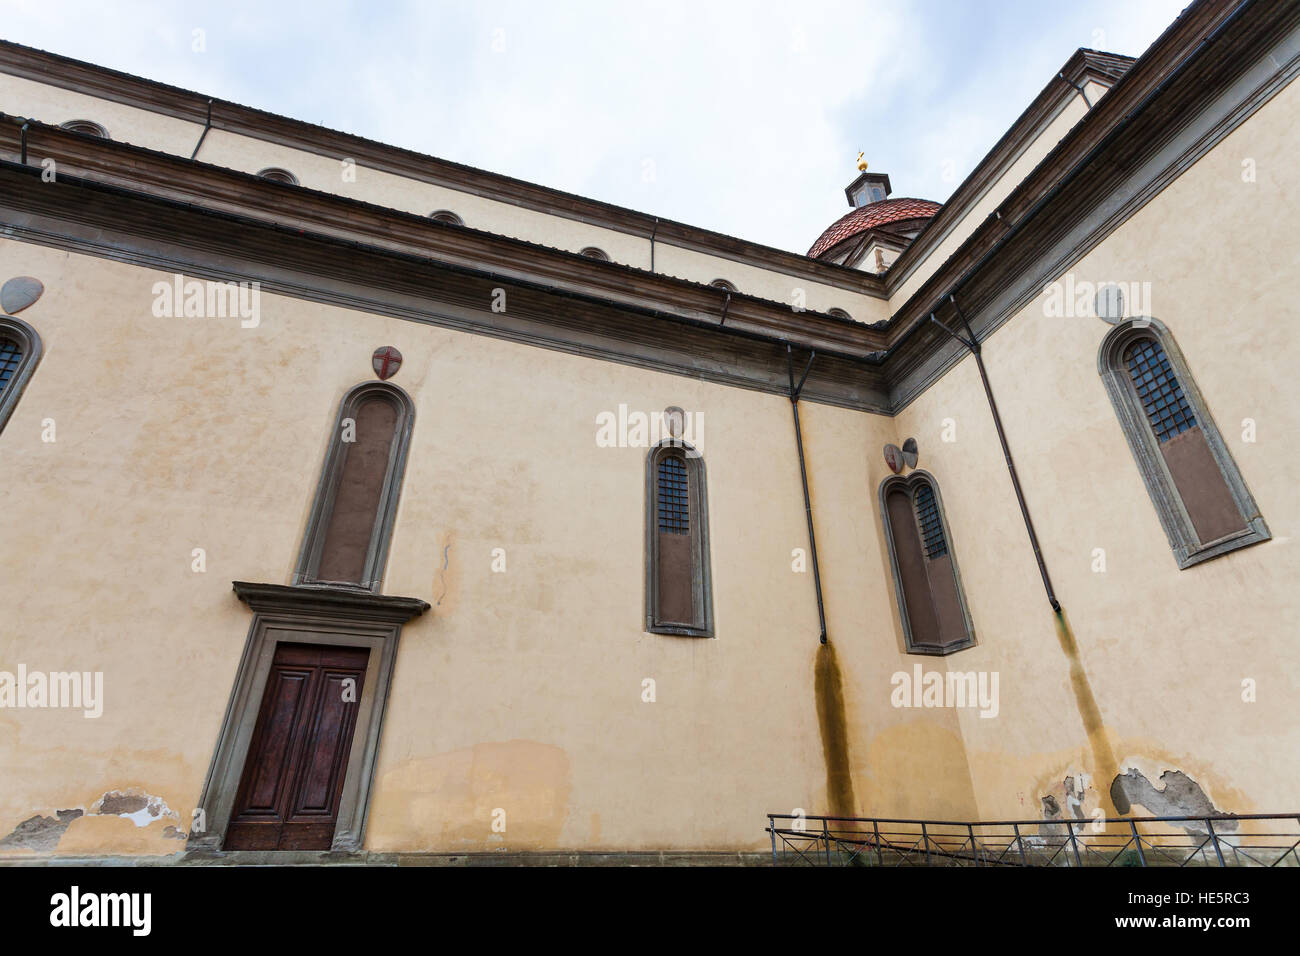 travel to Italy - walls of Basilica di Santo Spirito (Basilica of the Holy Spirit) in Florence city - Stock Image